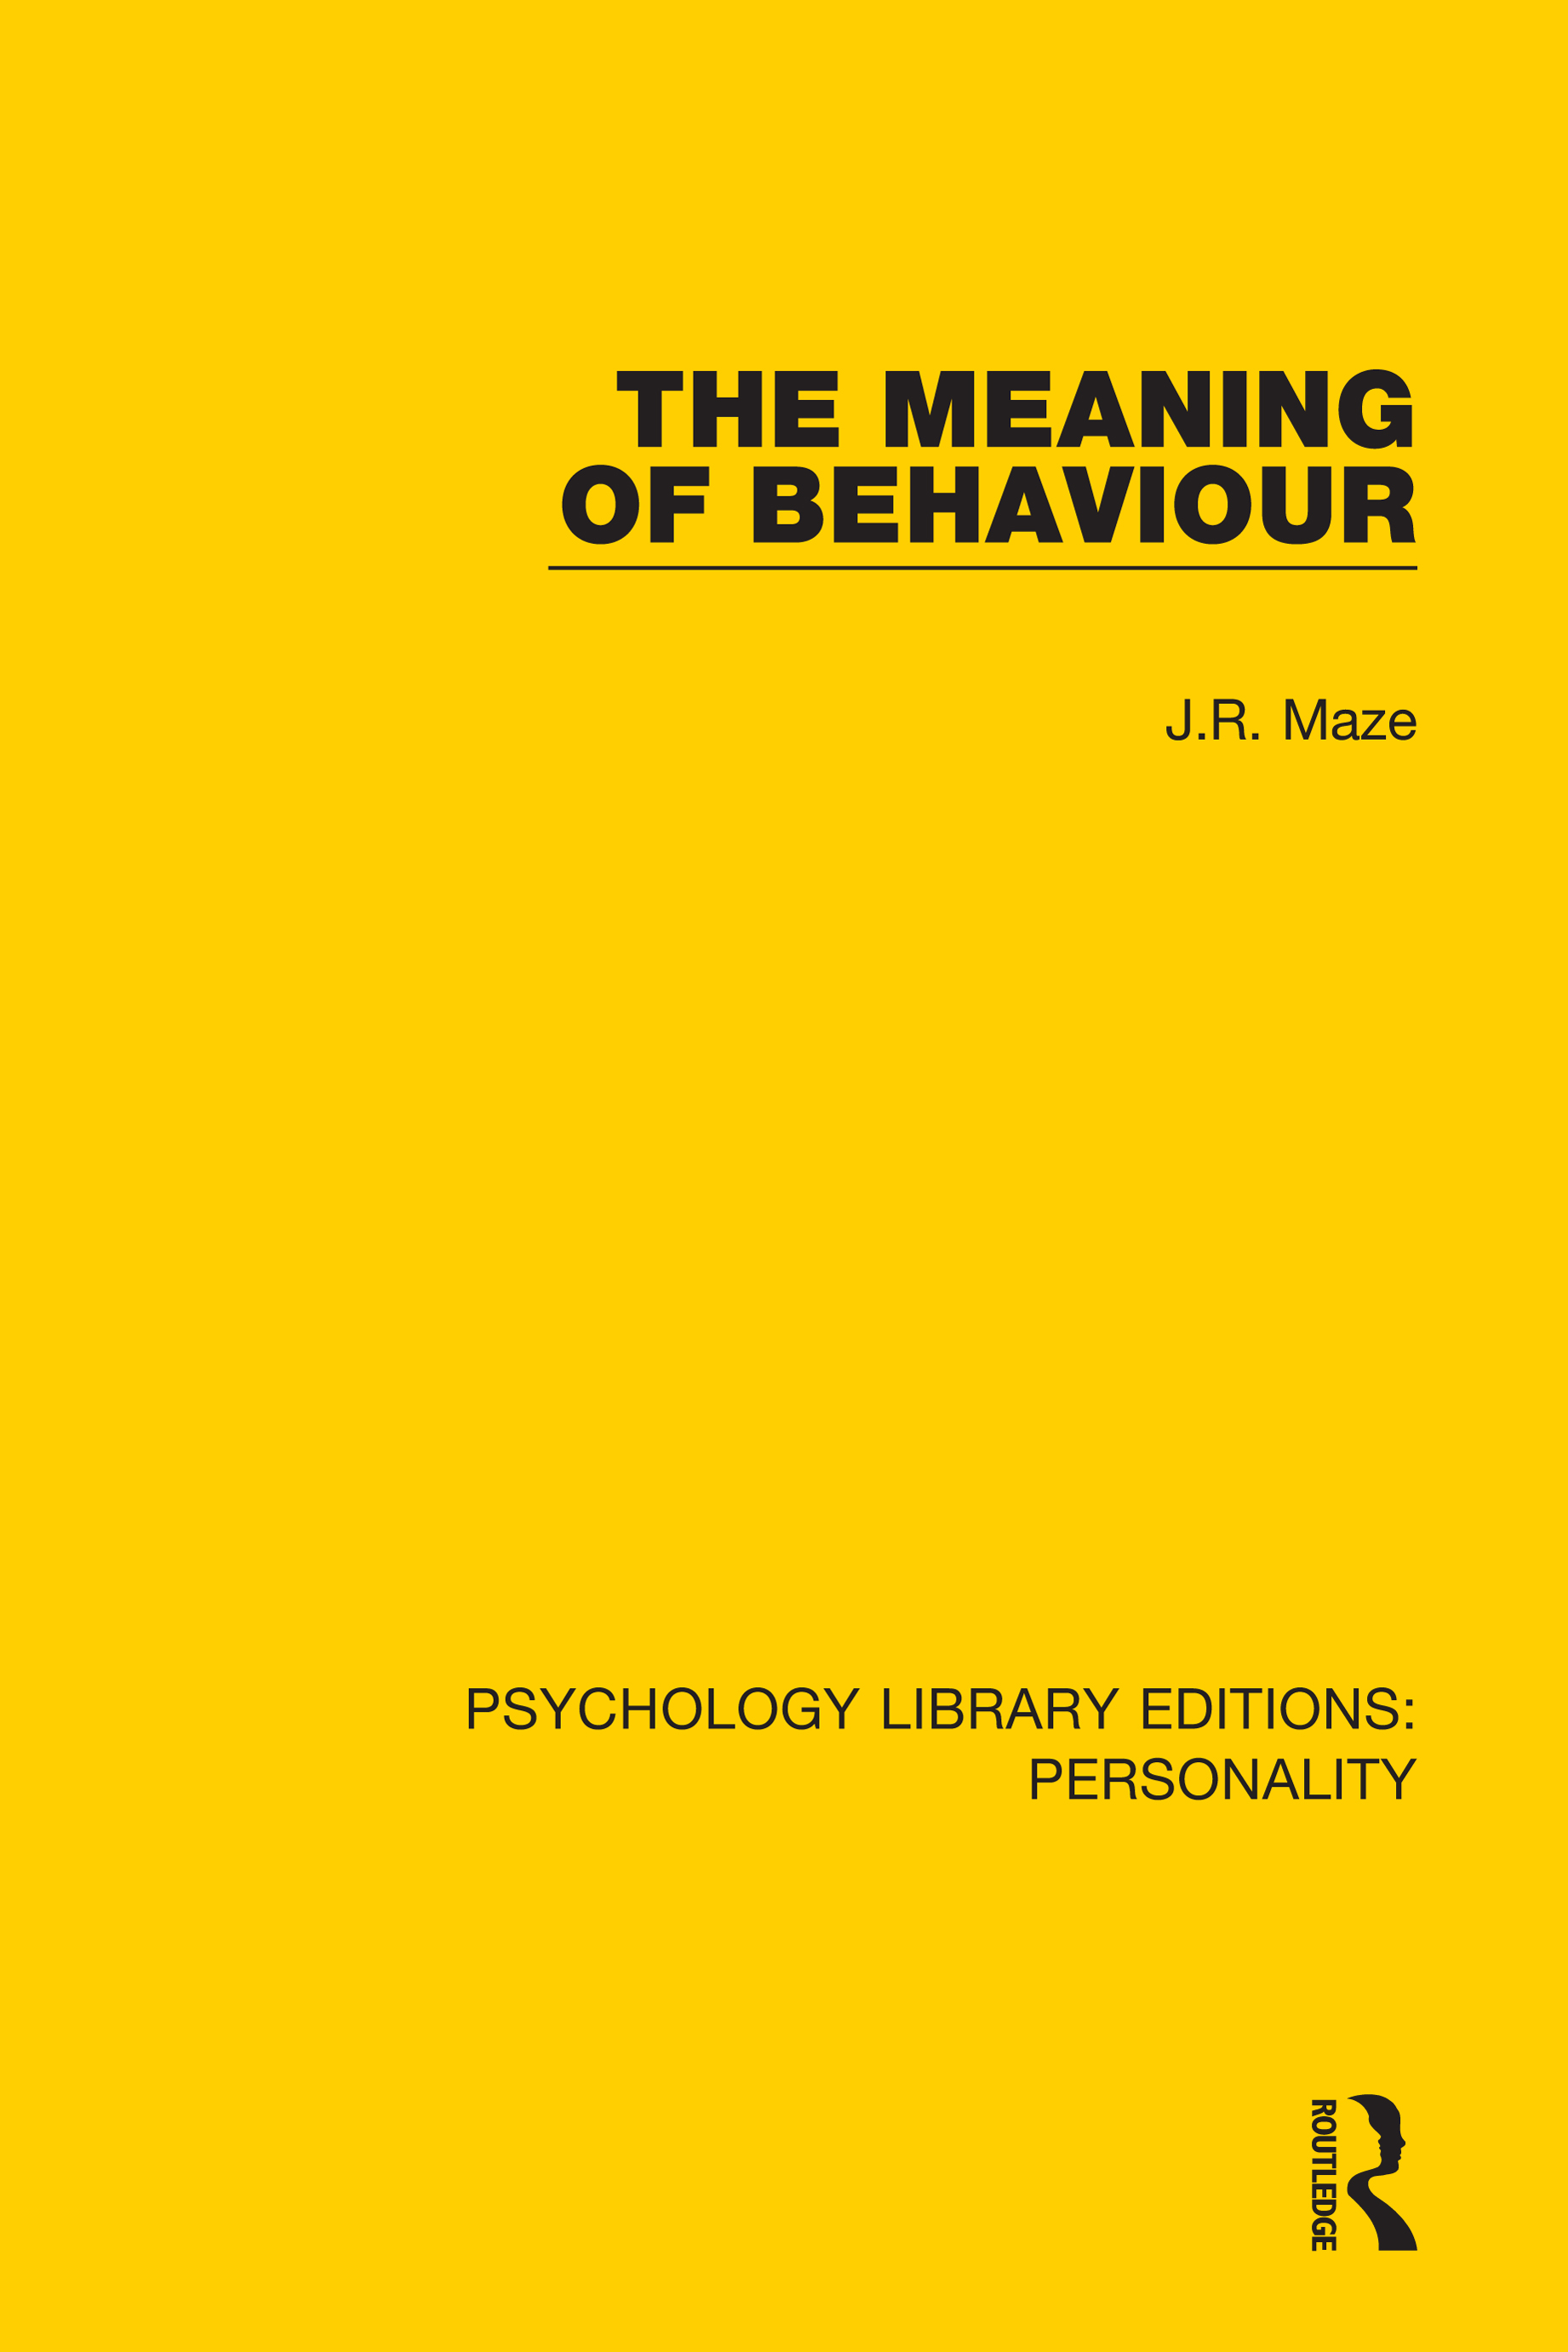 The Meaning of Behaviour